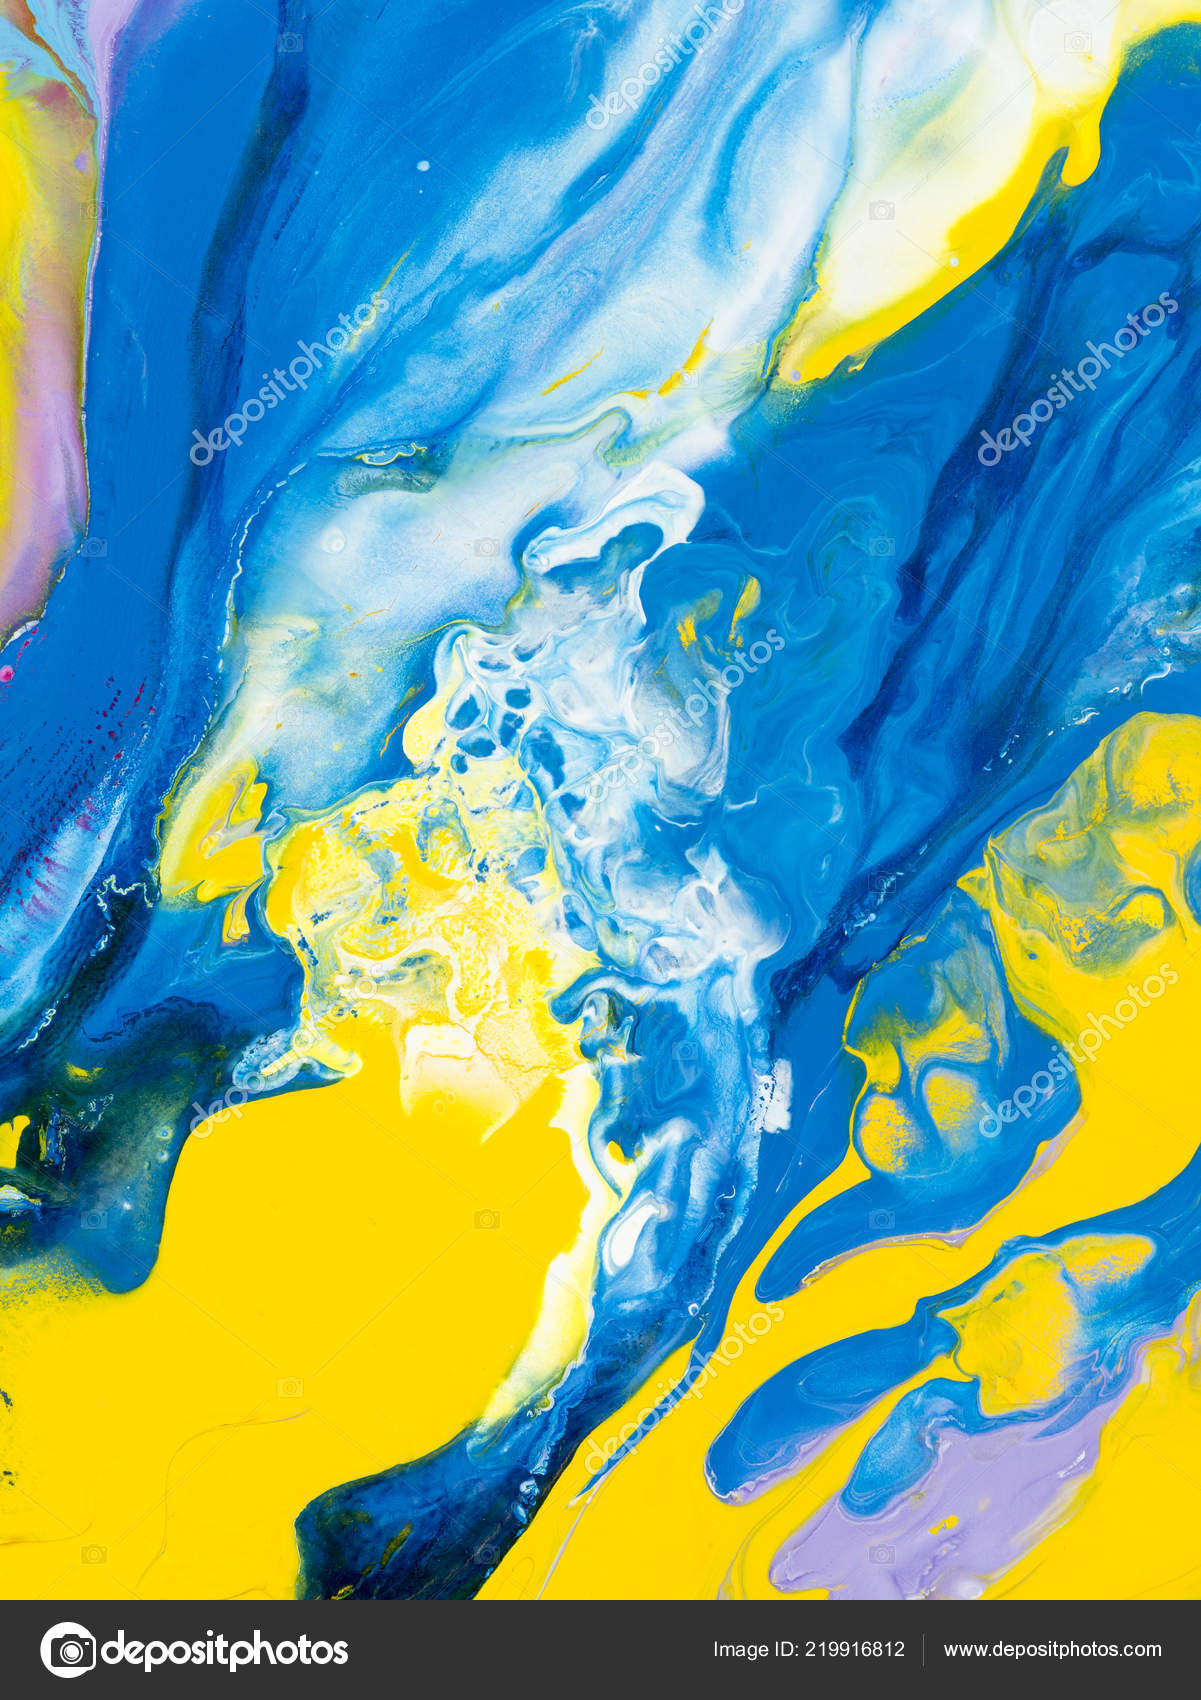 Blue Yellow Creative Abstract Hand Painted Background Fragment Acrylic Painting Stock Photo C Artlu 219916812